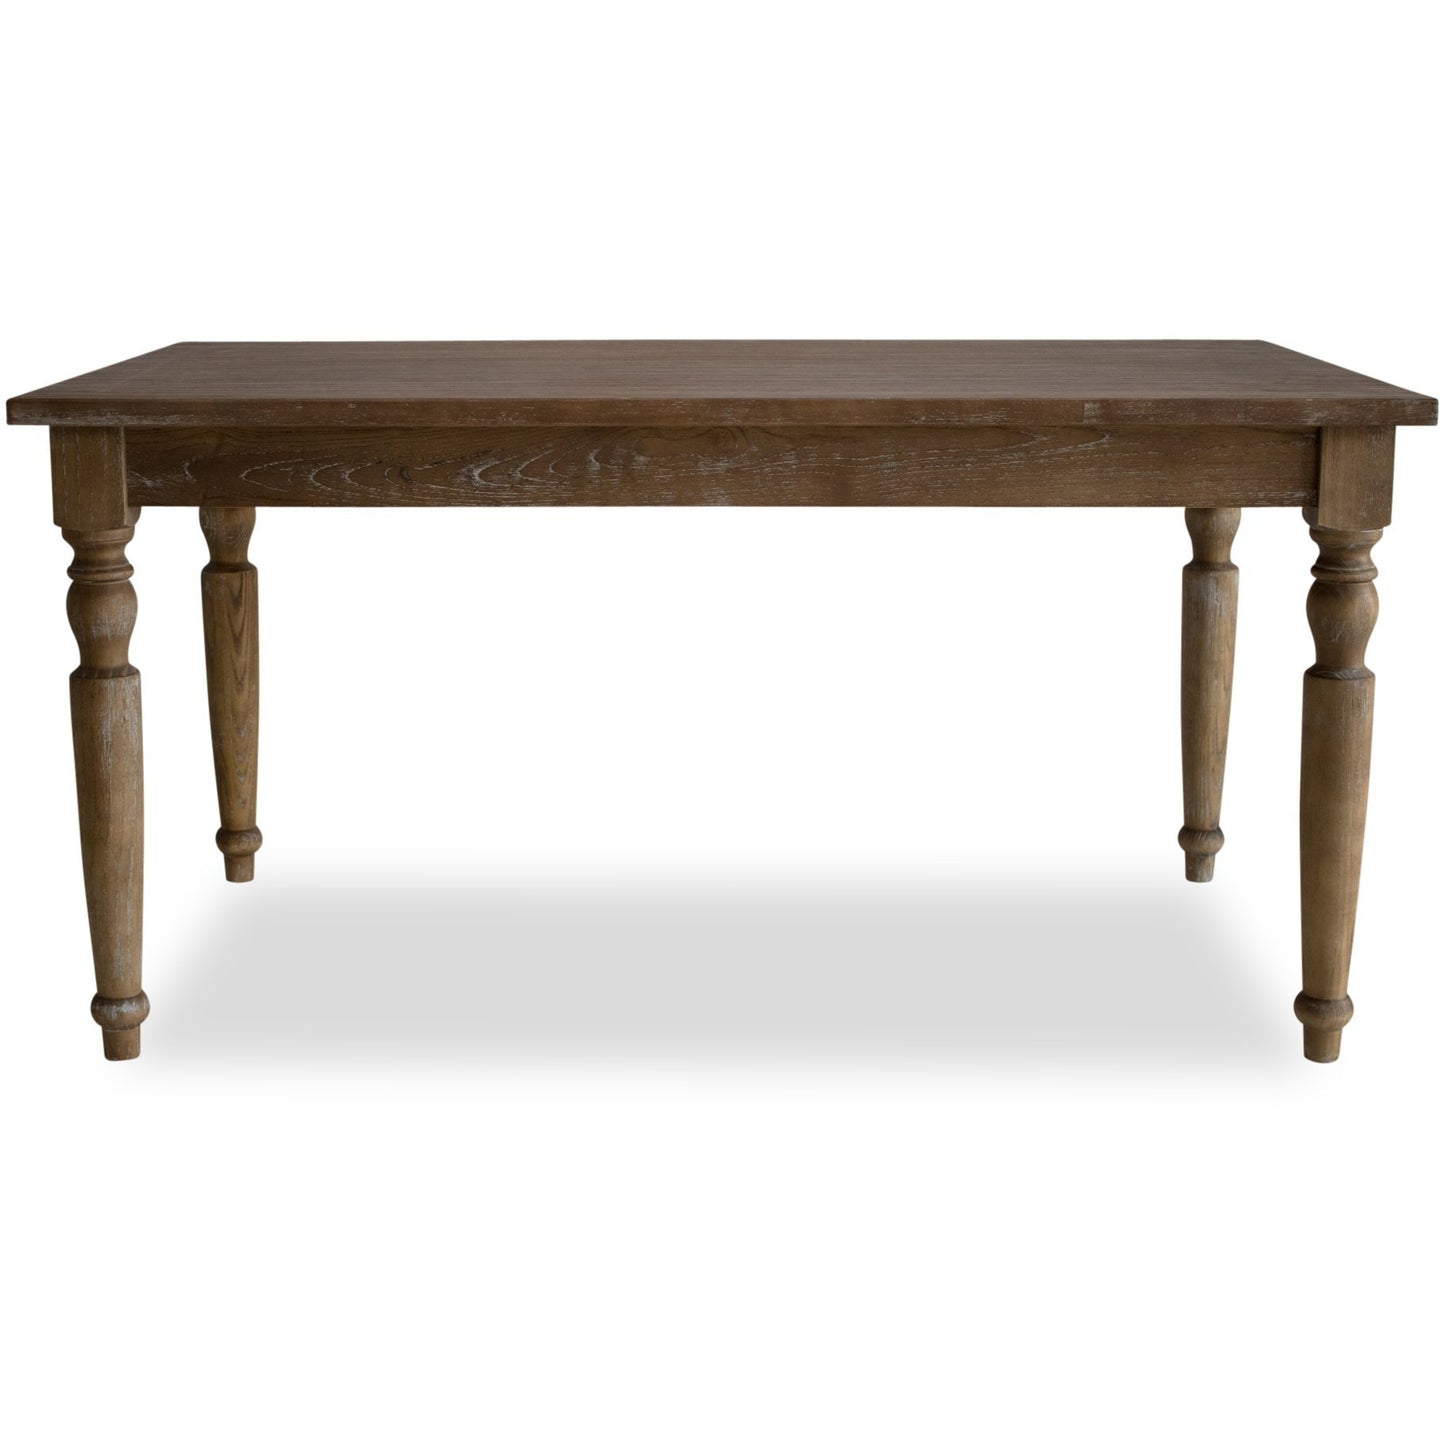 Edloe Finch Jameson Dining Table